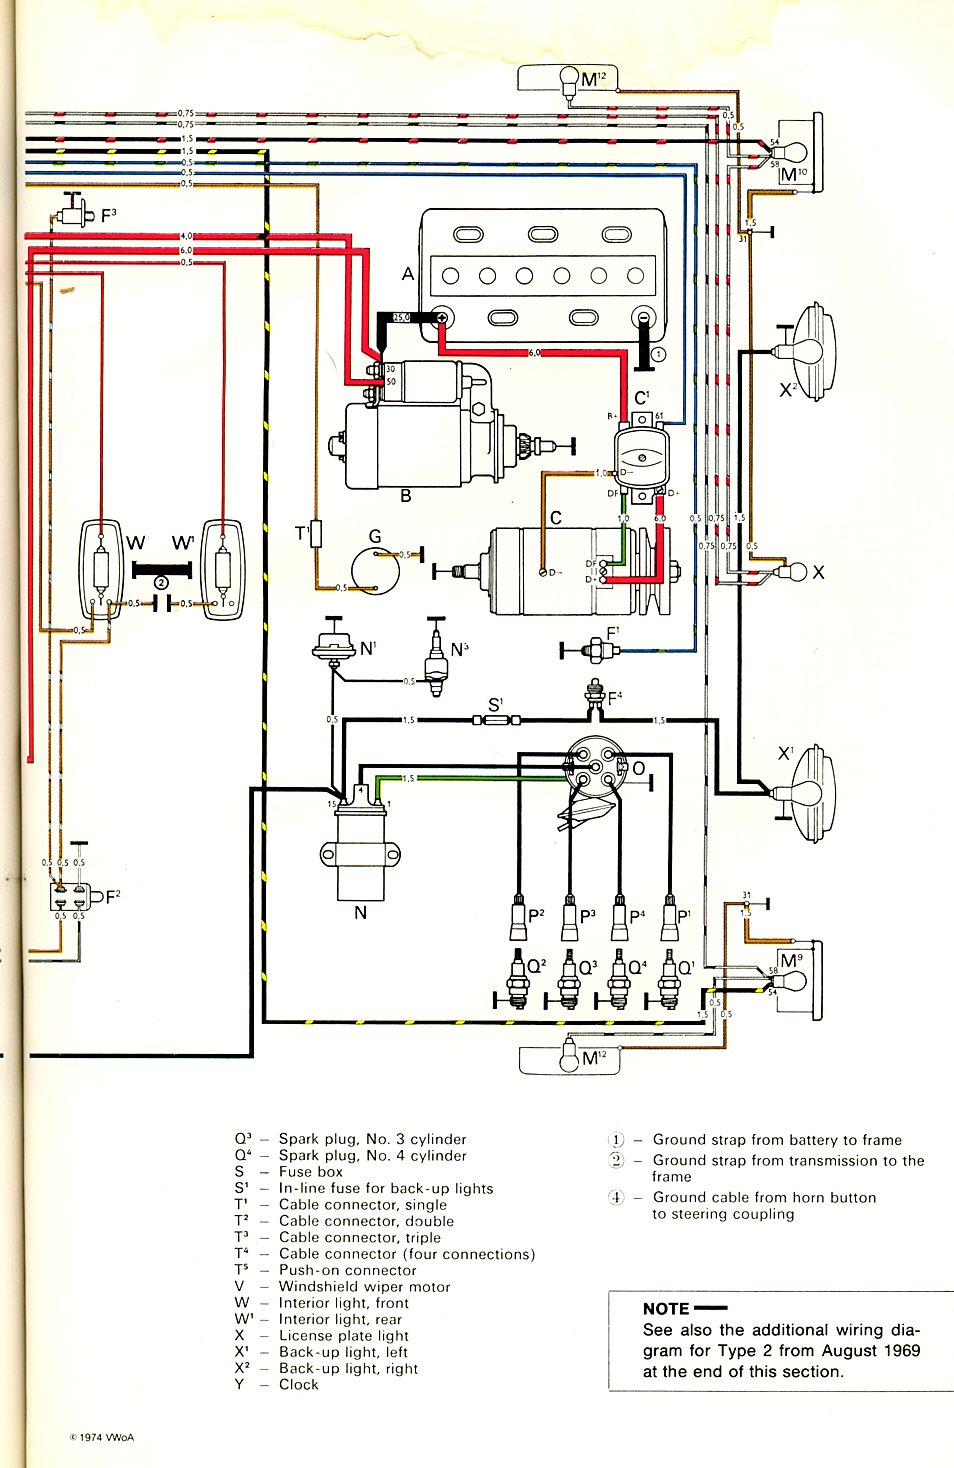 Type 2 Wiring Diagrams 1989 Gm Alternator Diagram 4 Wire